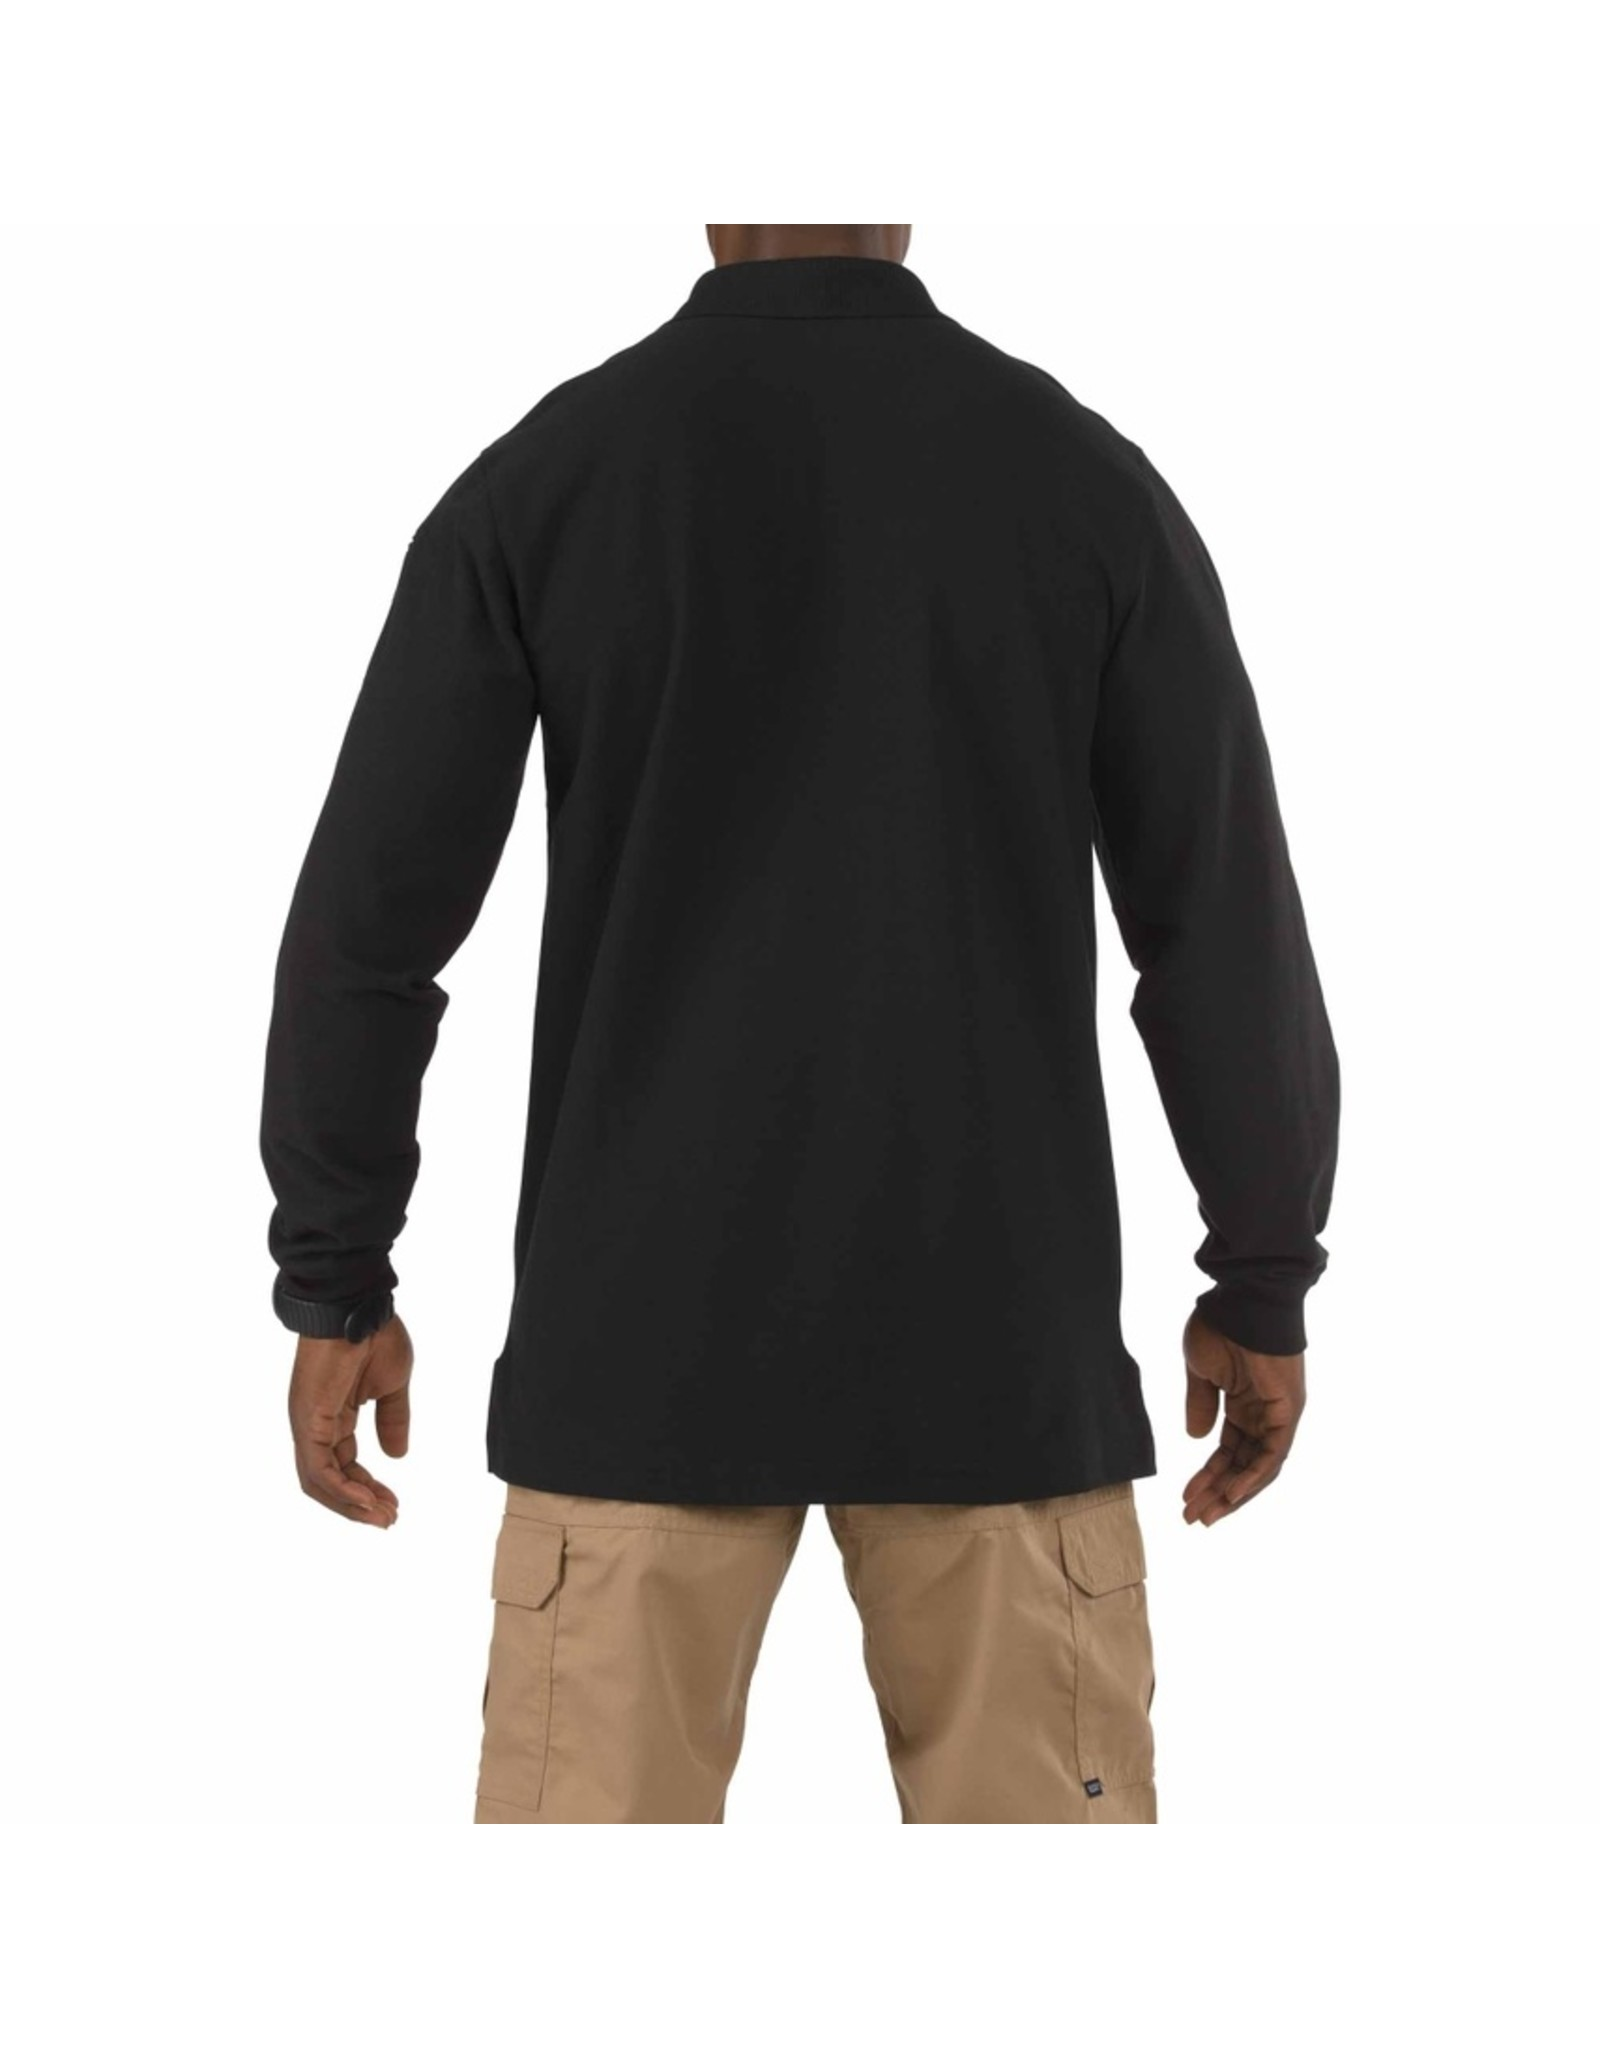 5.11 Tactical 5.11 Utility Polo Long Sleve Shirt ( Small)